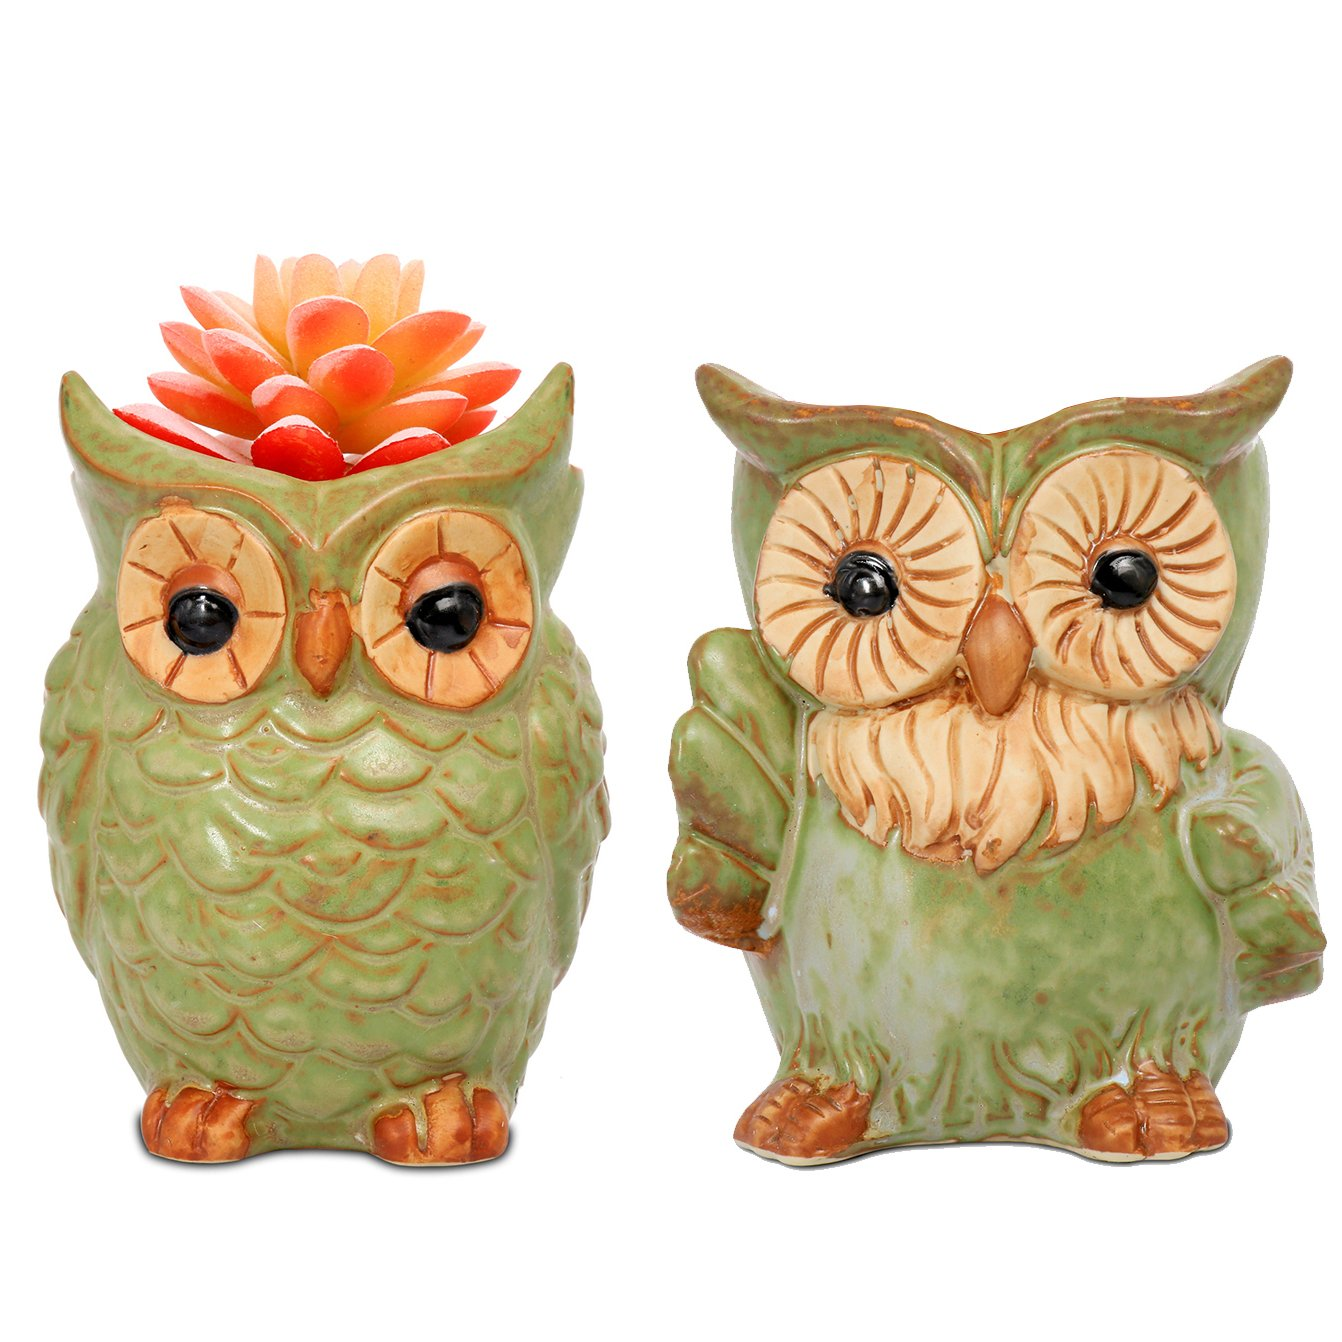 ROSE CREATE 2pcs 5.3 Inches Big Owl Planters